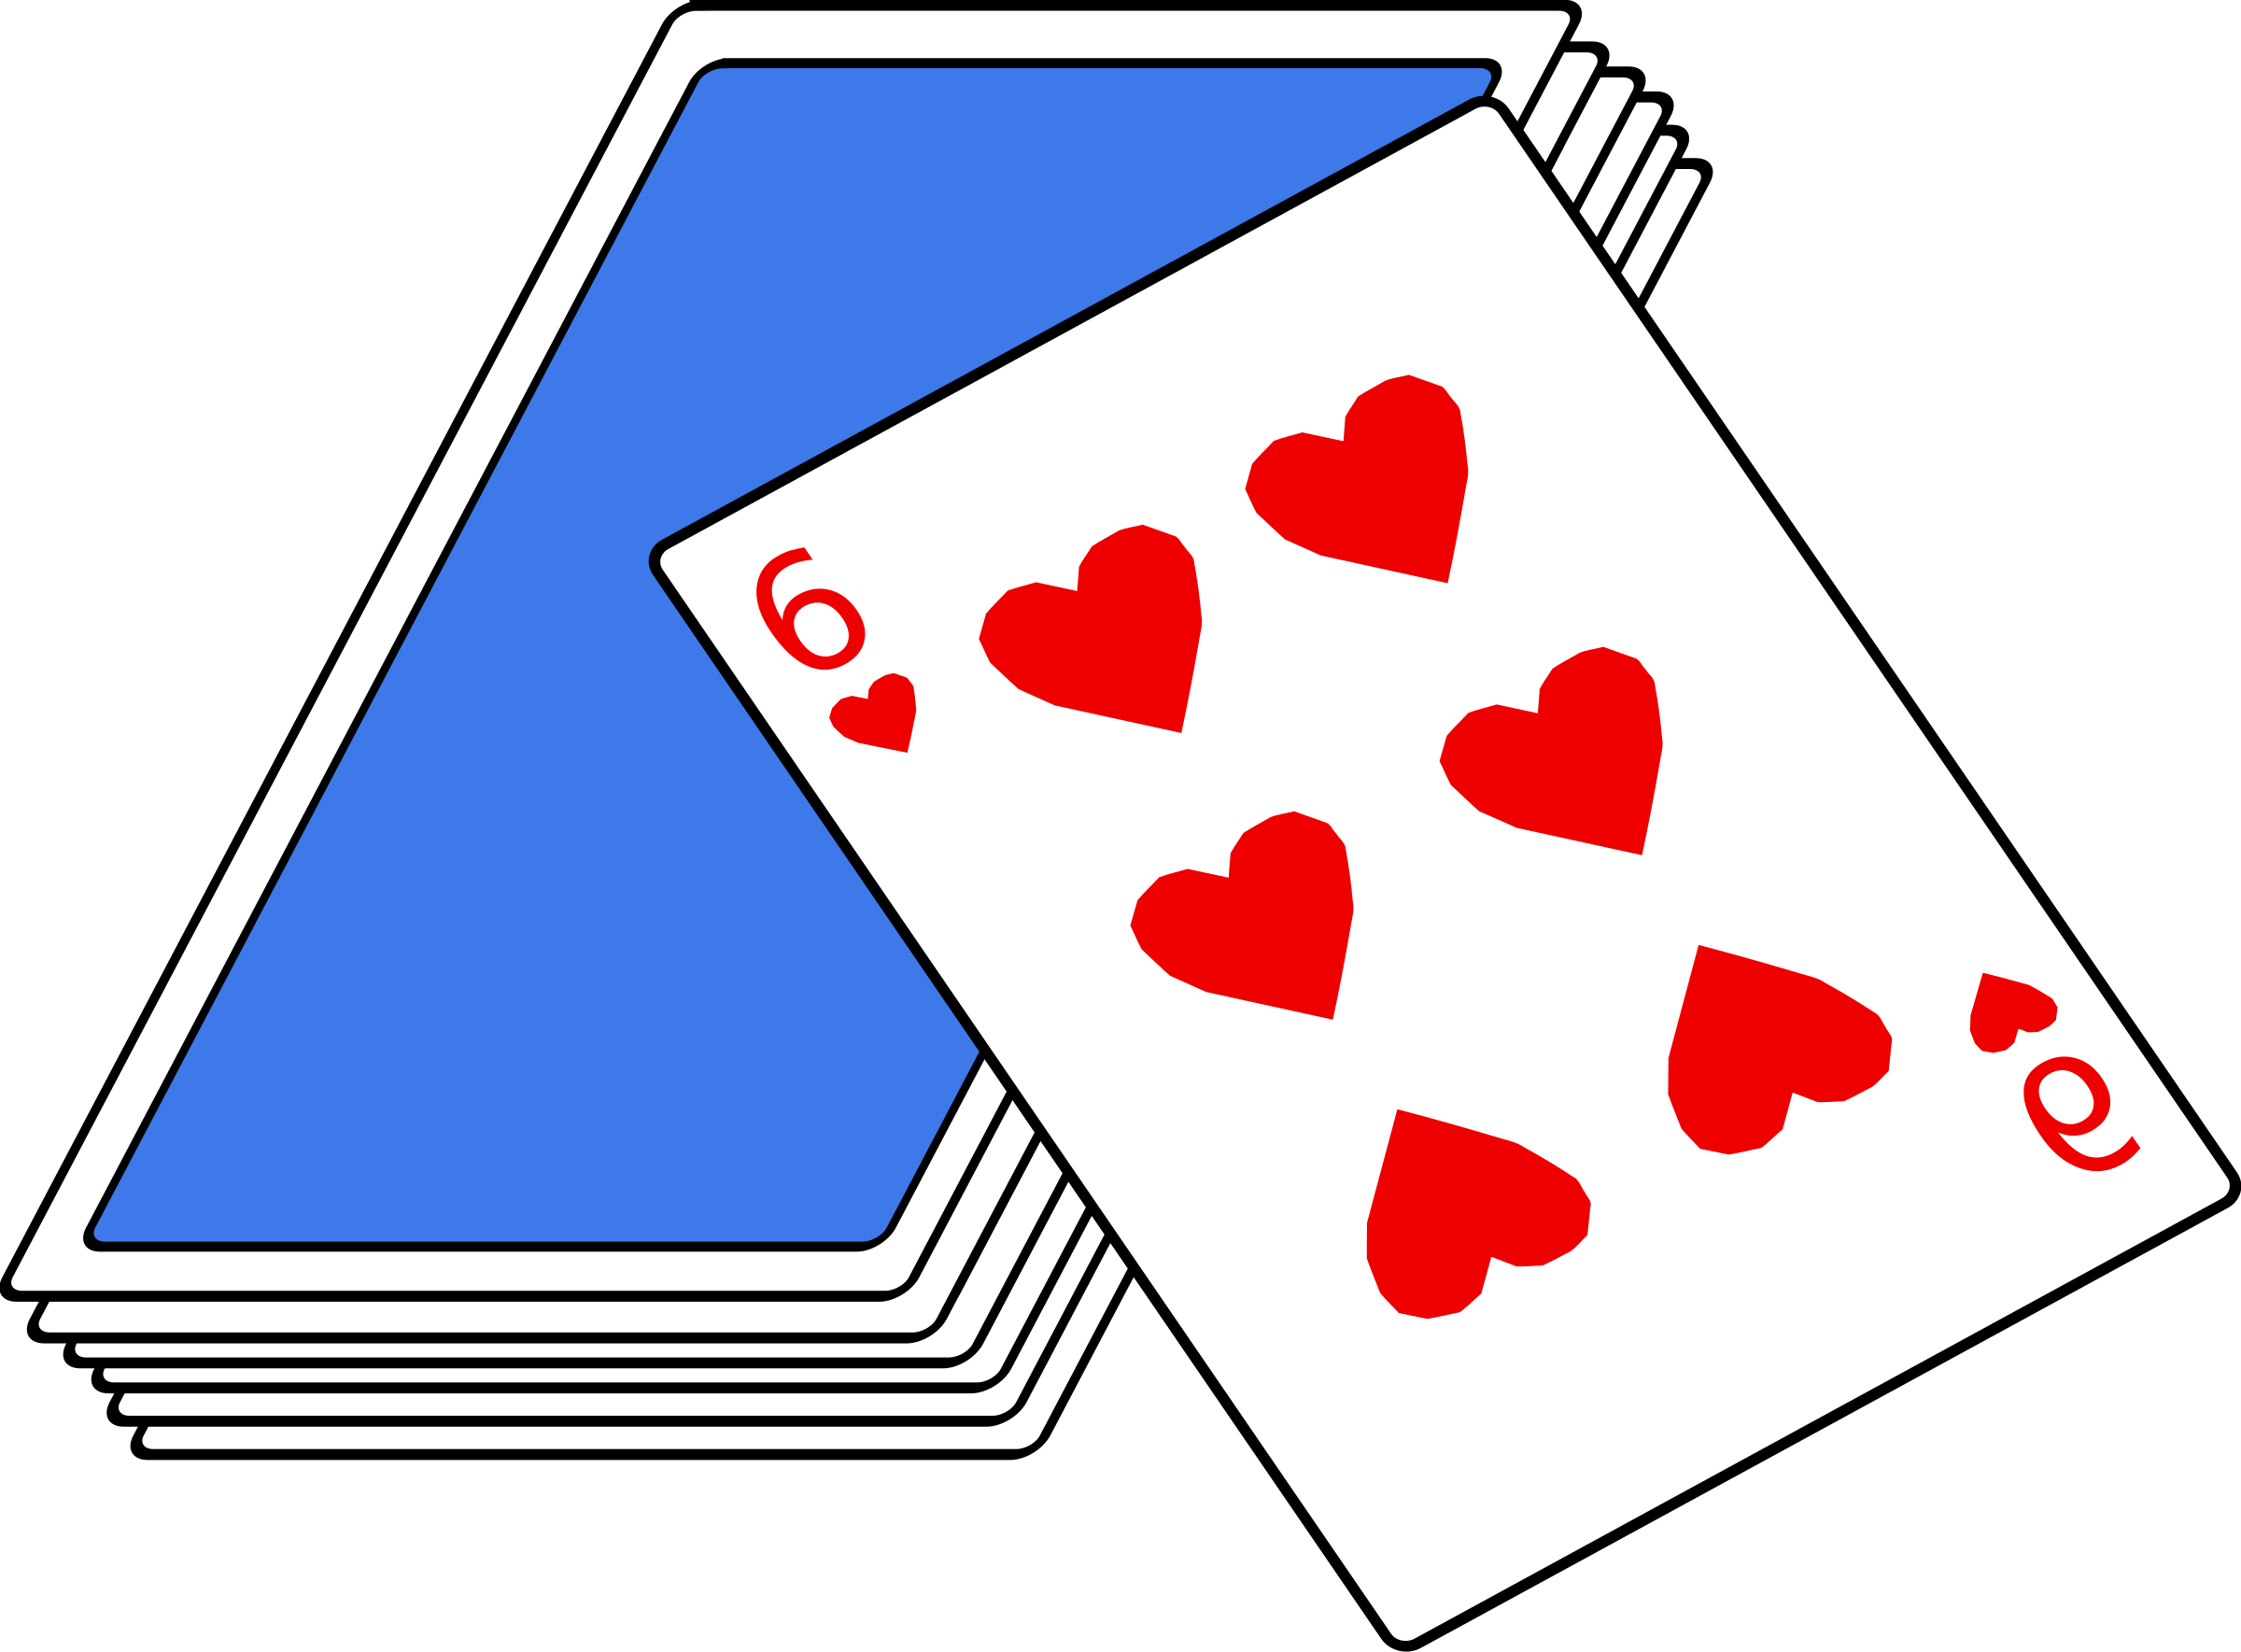 Clipart deck of cards 4 » Clipart Station.